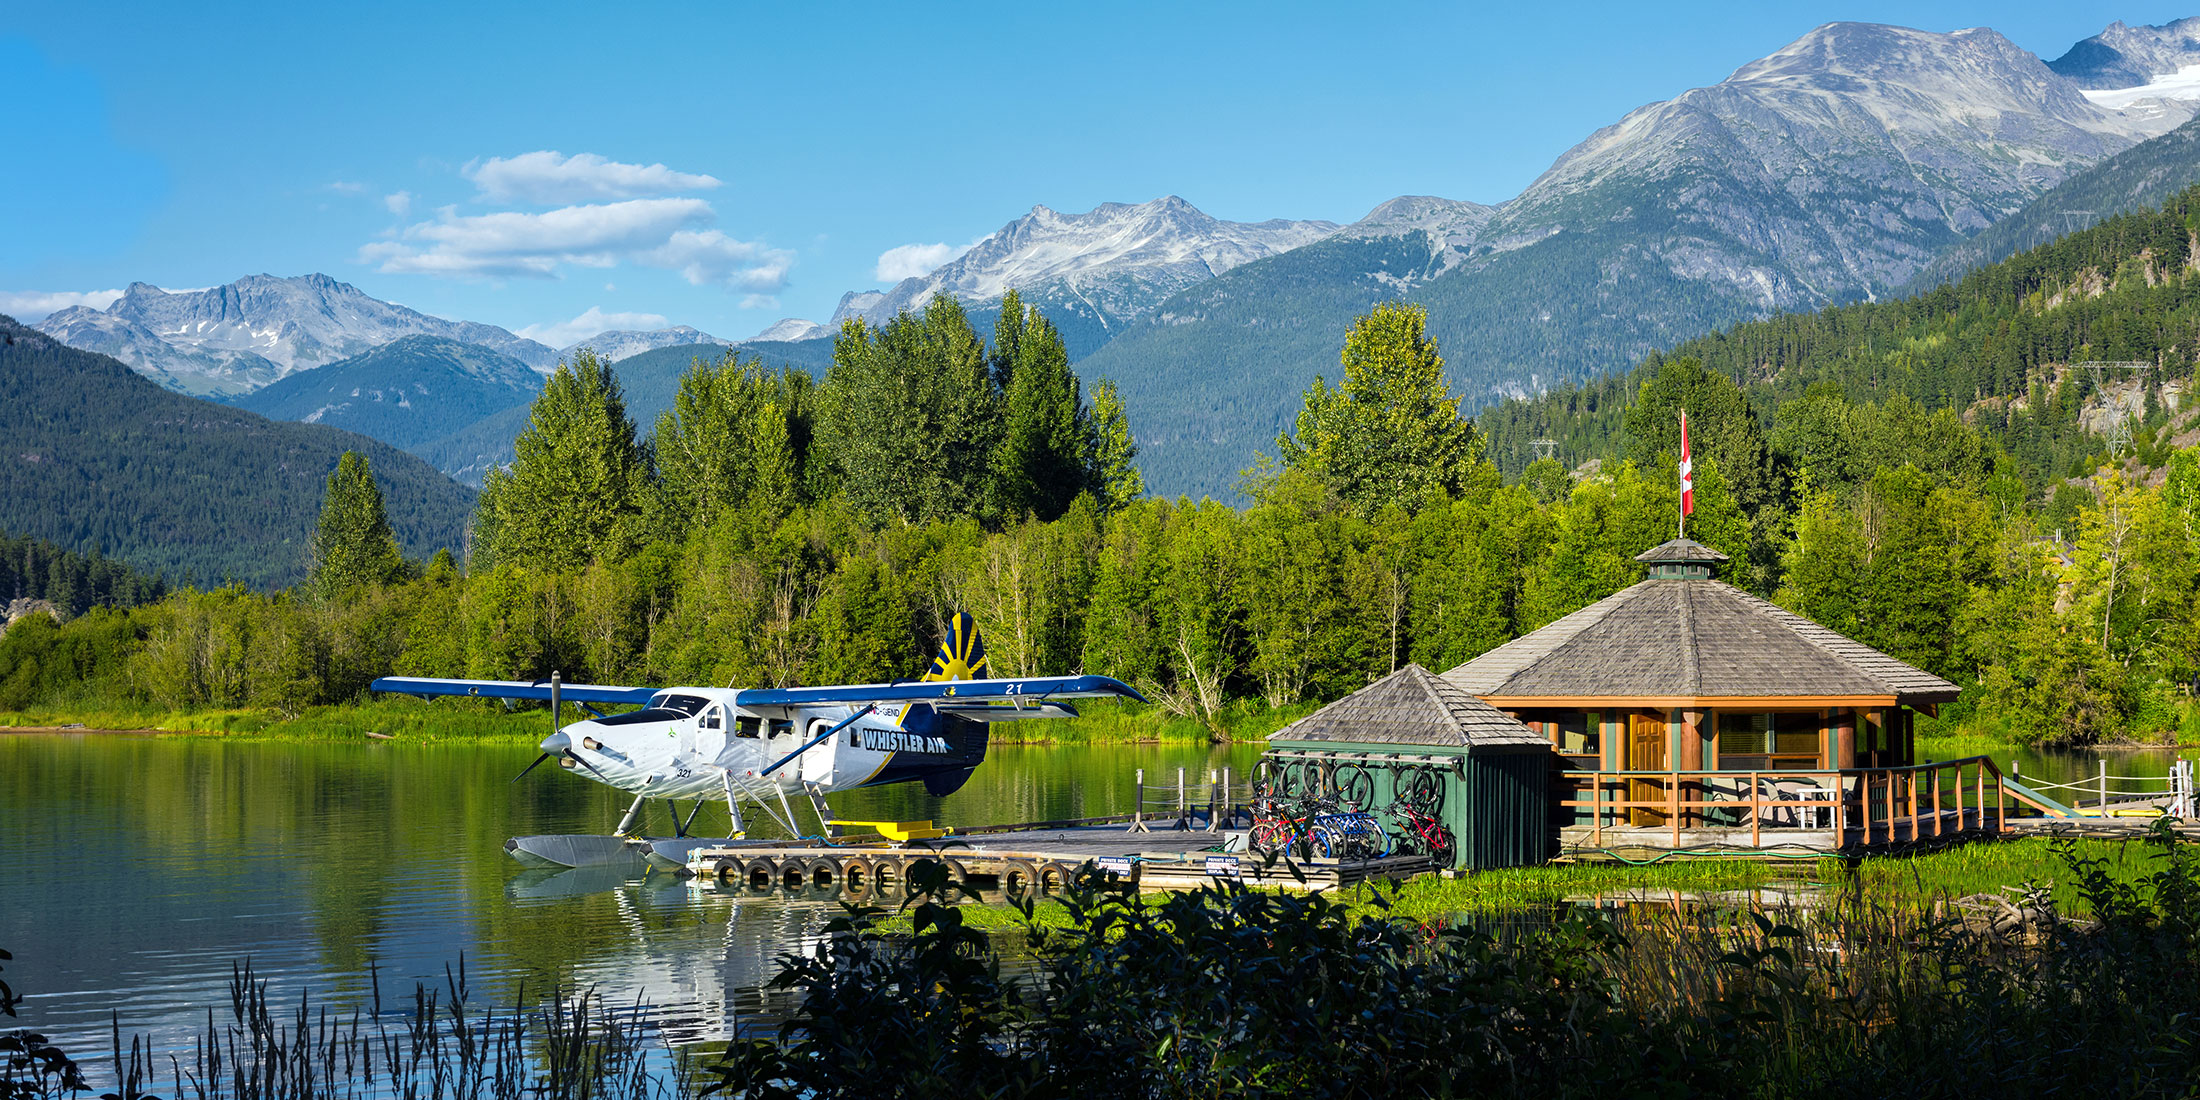 Whistler Air Floatplane